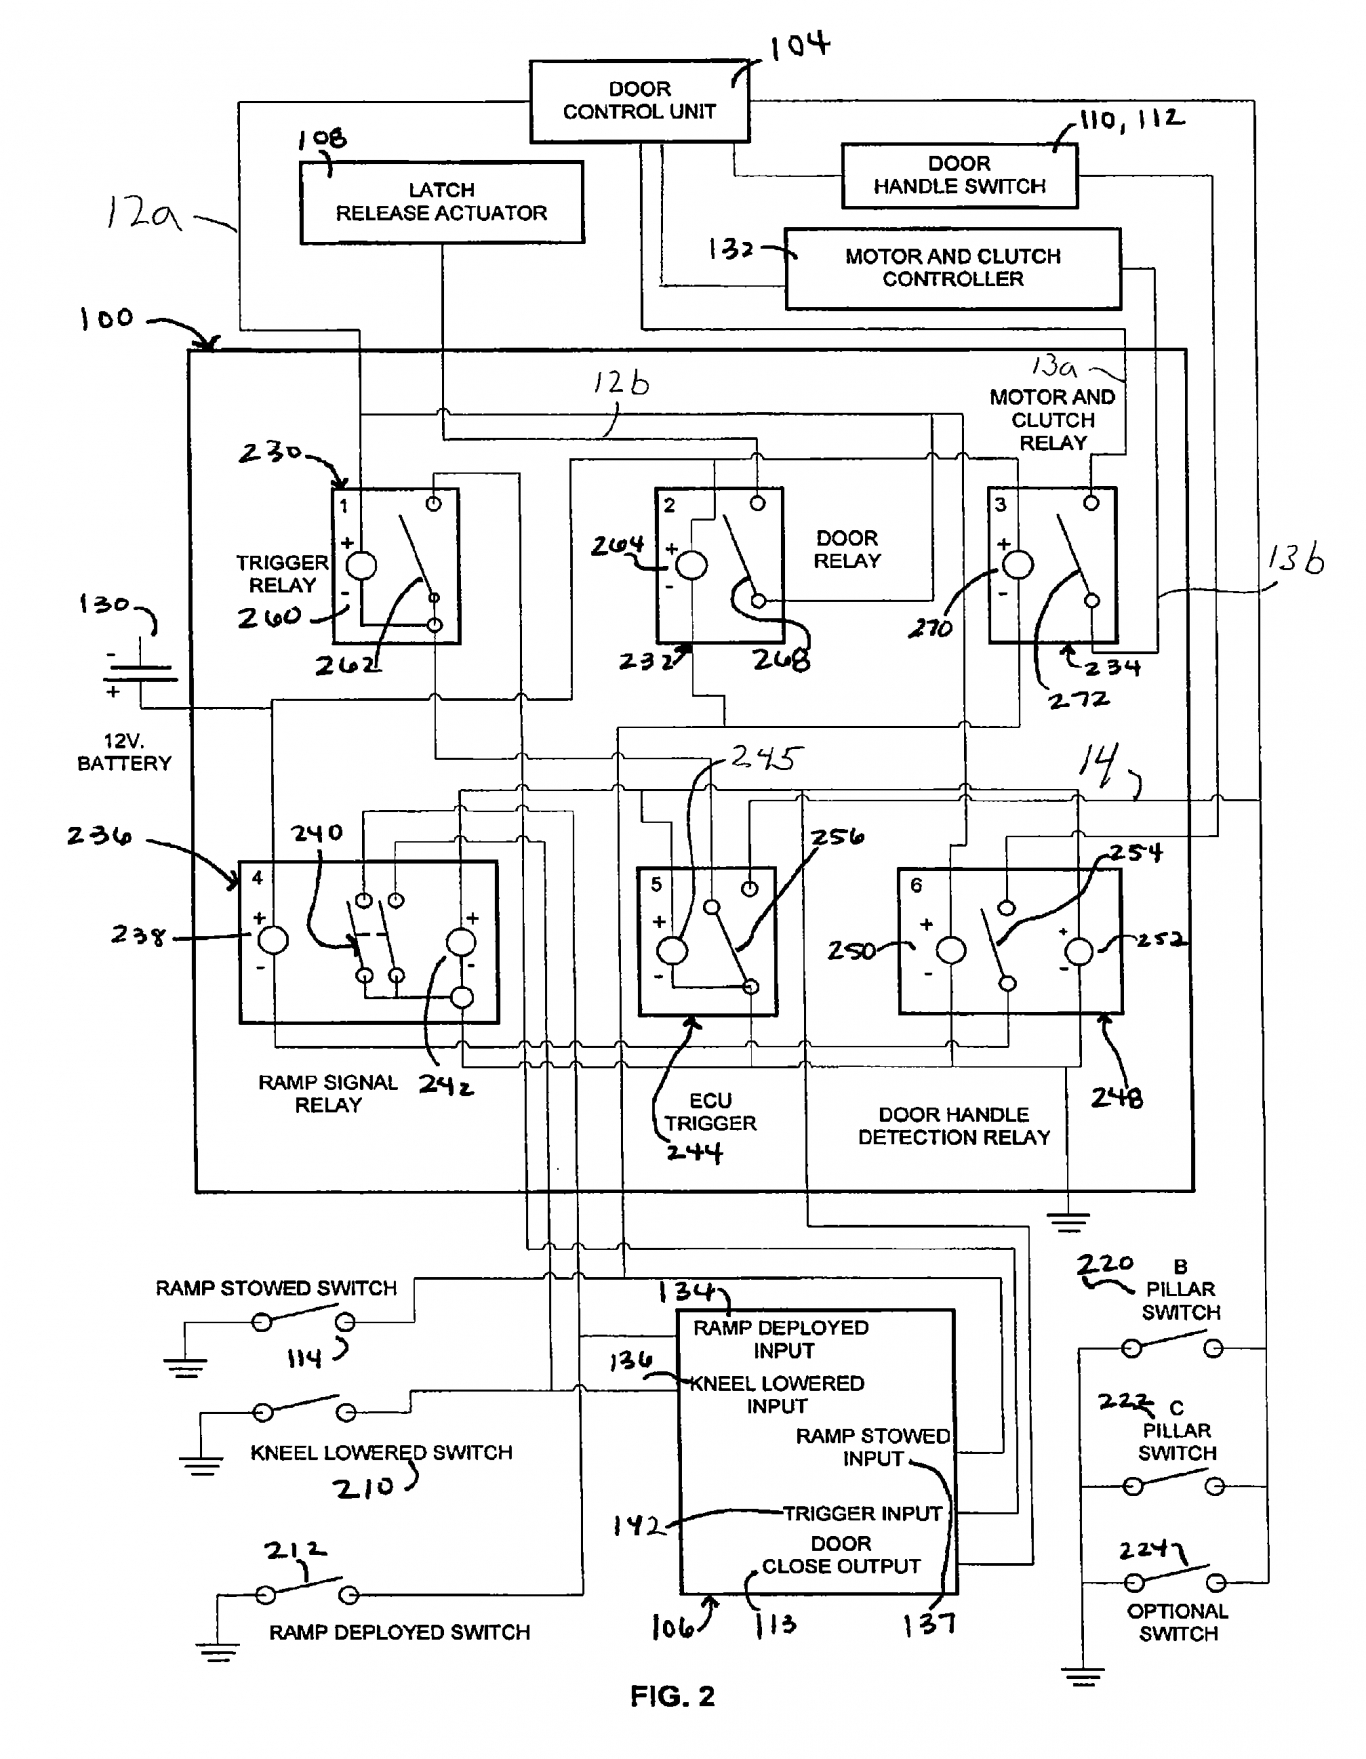 golden technologies lift chair wiring diagram Collection-Golden Technologies Lift Chair Wiring Diagram Luxury Outstanding Braun 917 Lift Wiring Diagram Picture Collection 1-p